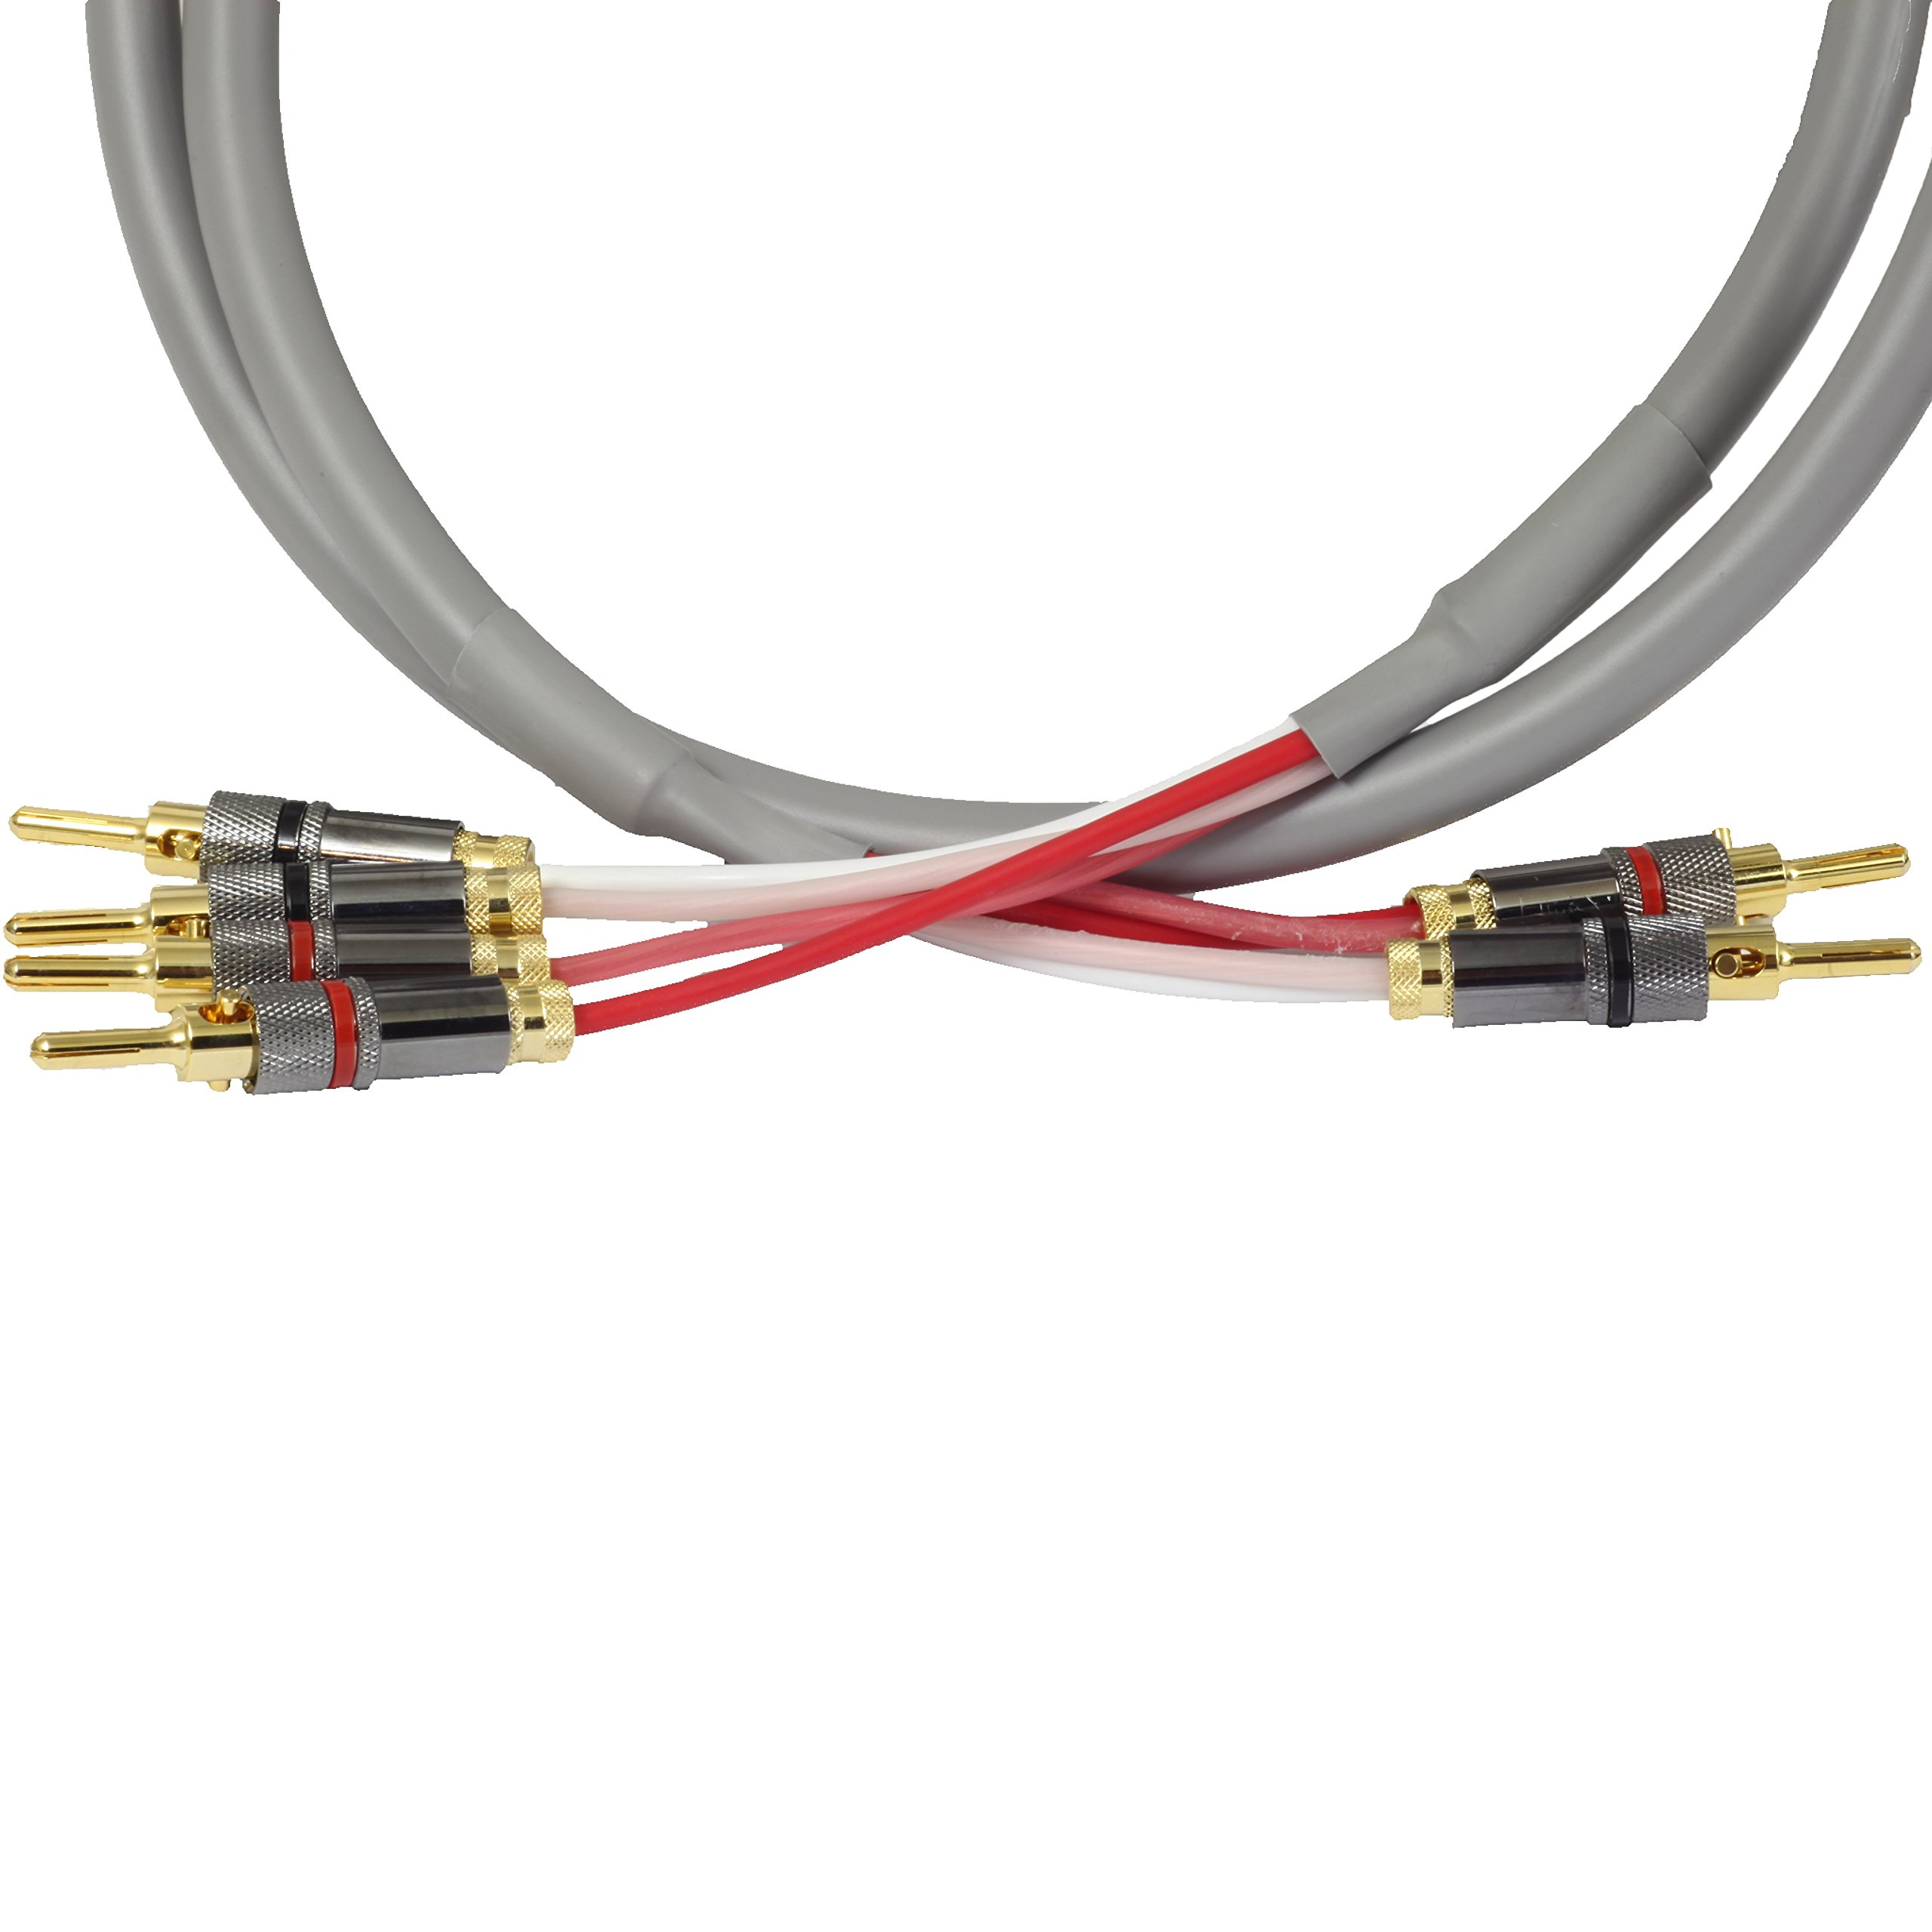 Blue Jeans Cable Canare 4S11 Speaker Cable, with Welded Locking Bananas, Bi-Wire Terminations, 15 foot (single cable -- for one speaker); Assembled in the USA